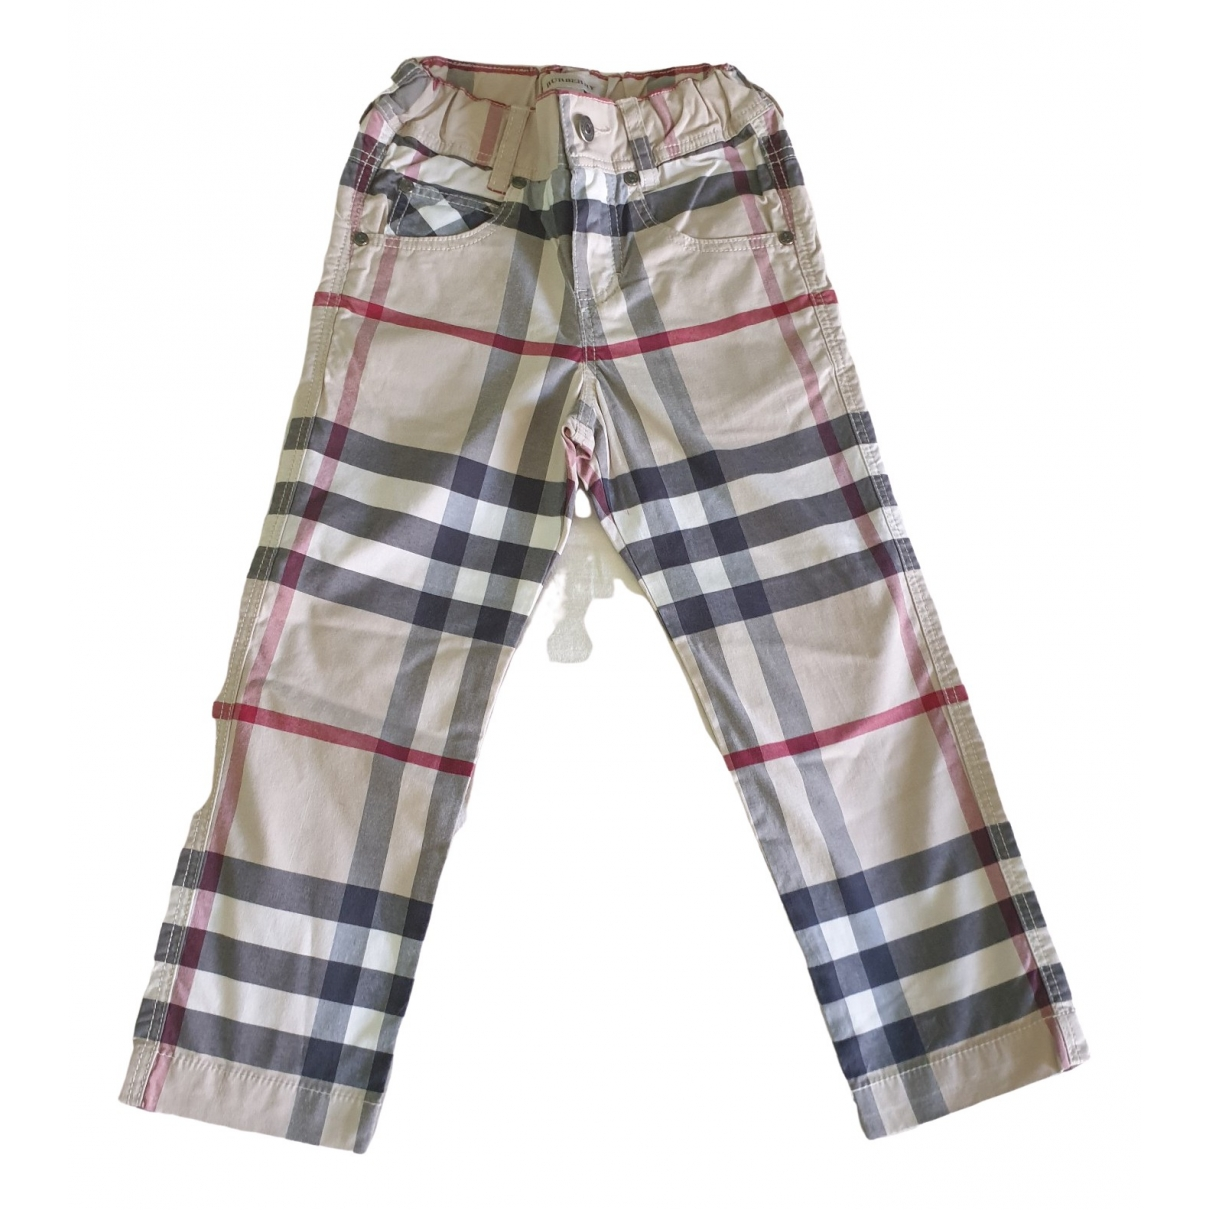 Burberry \N Multicolour Cotton Trousers for Kids 3 years - up to 98cm FR